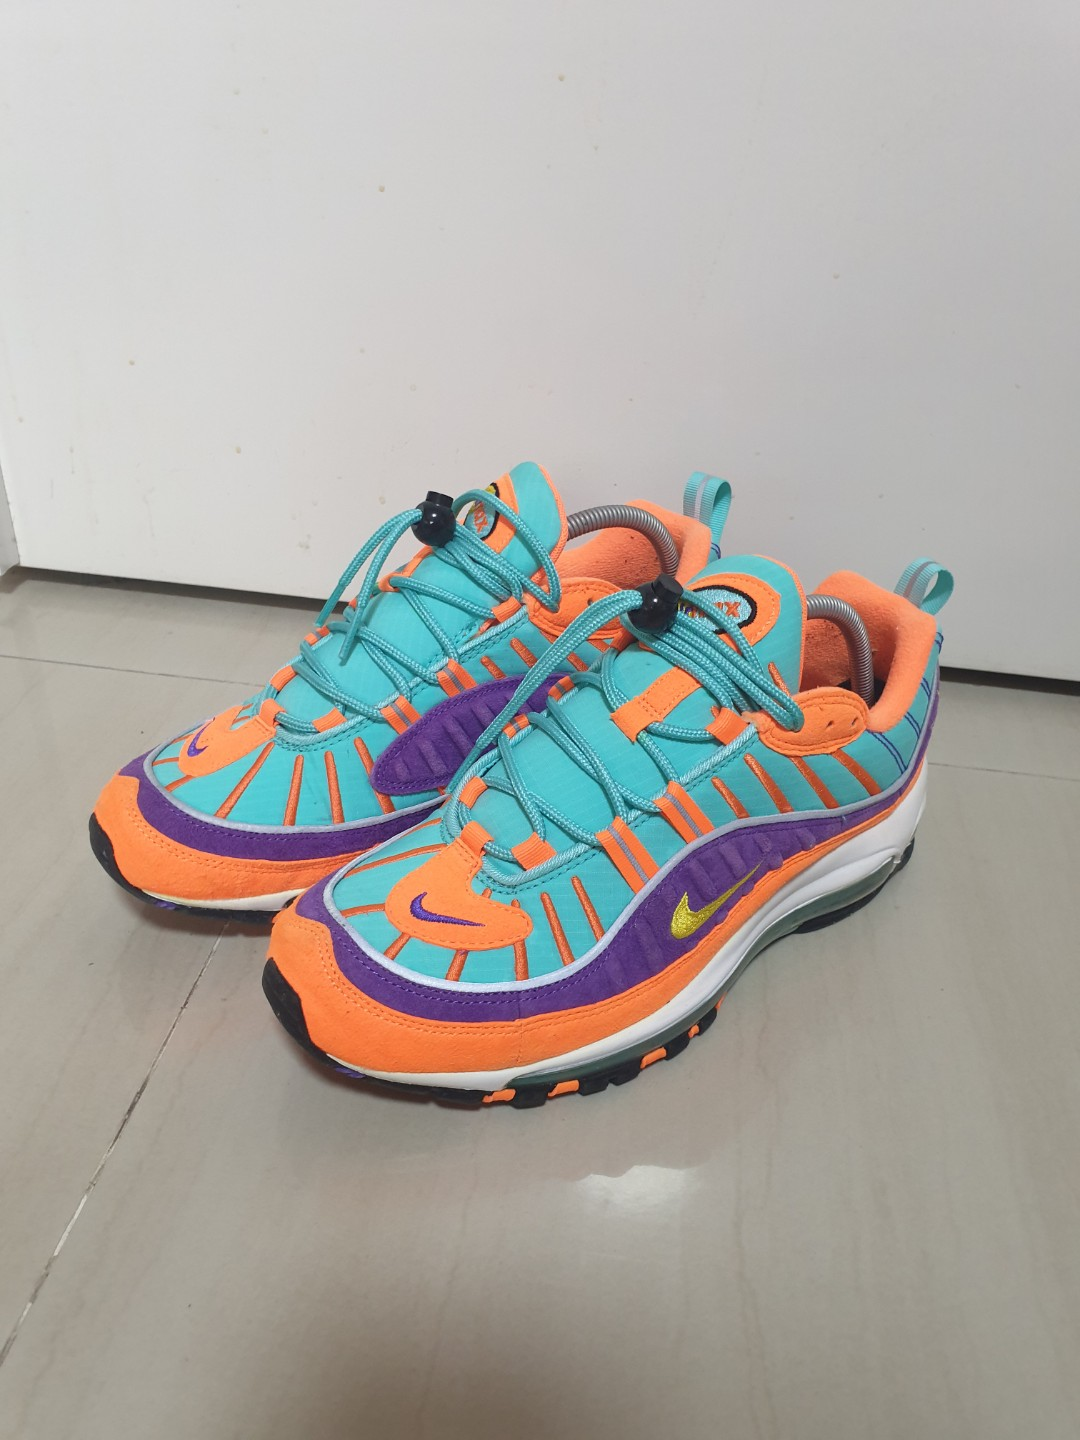 pretty nice 65a1d 3e732 Nike Airmax 98, Men's Fashion, Footwear, Sneakers on Carousell